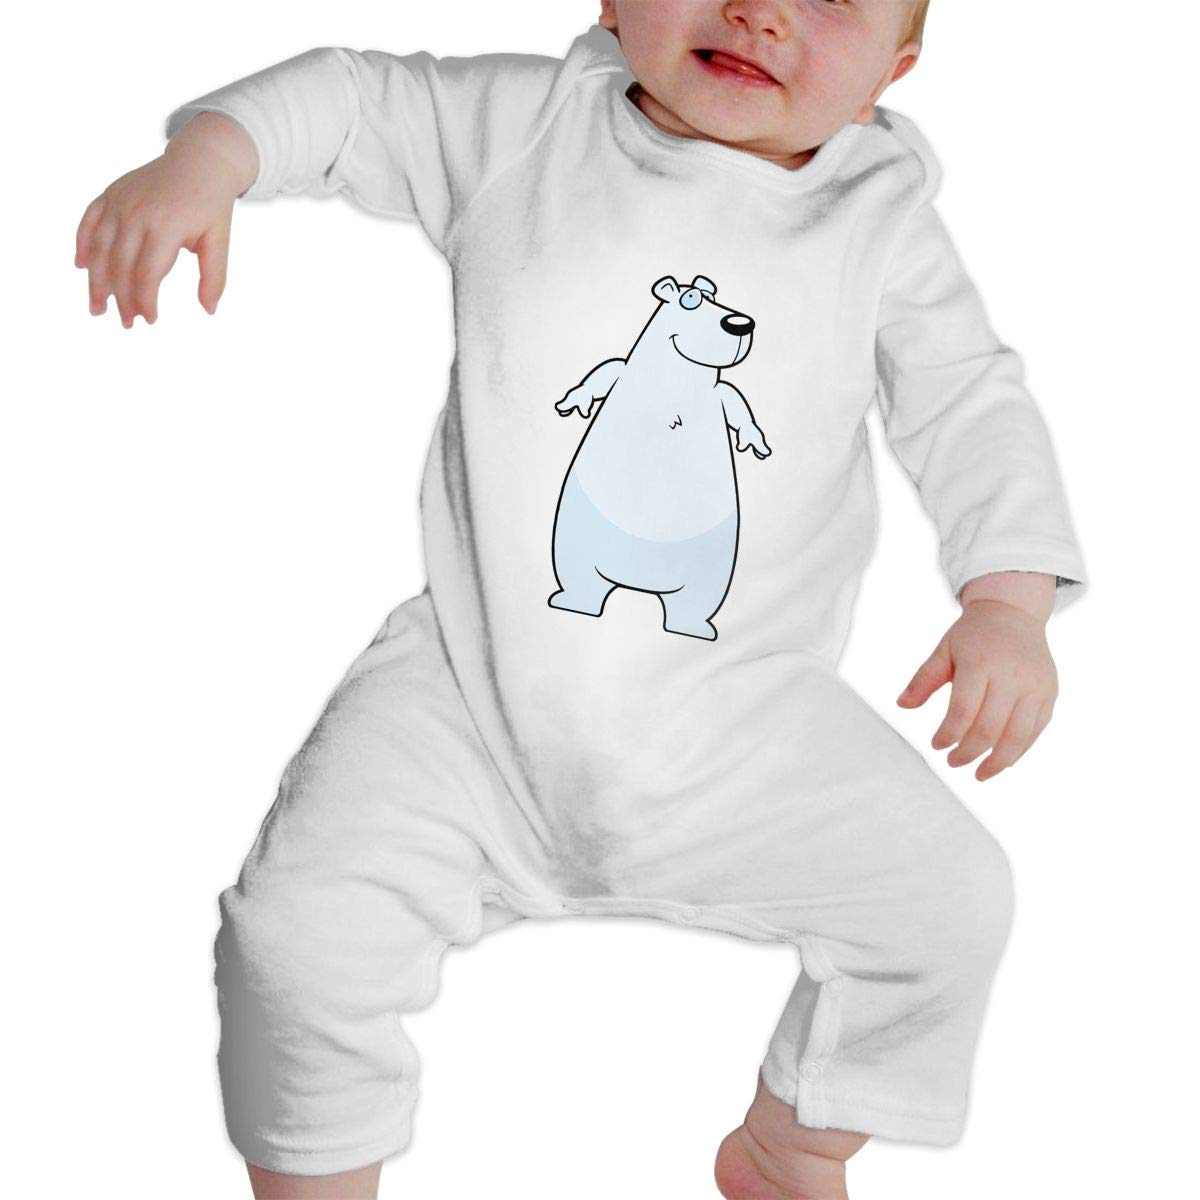 Infant Baby Boys Girls Cotton Long Sleeve White Polar Chubby Bear Jumpsuit Romper Funny Printed Romper Clothes